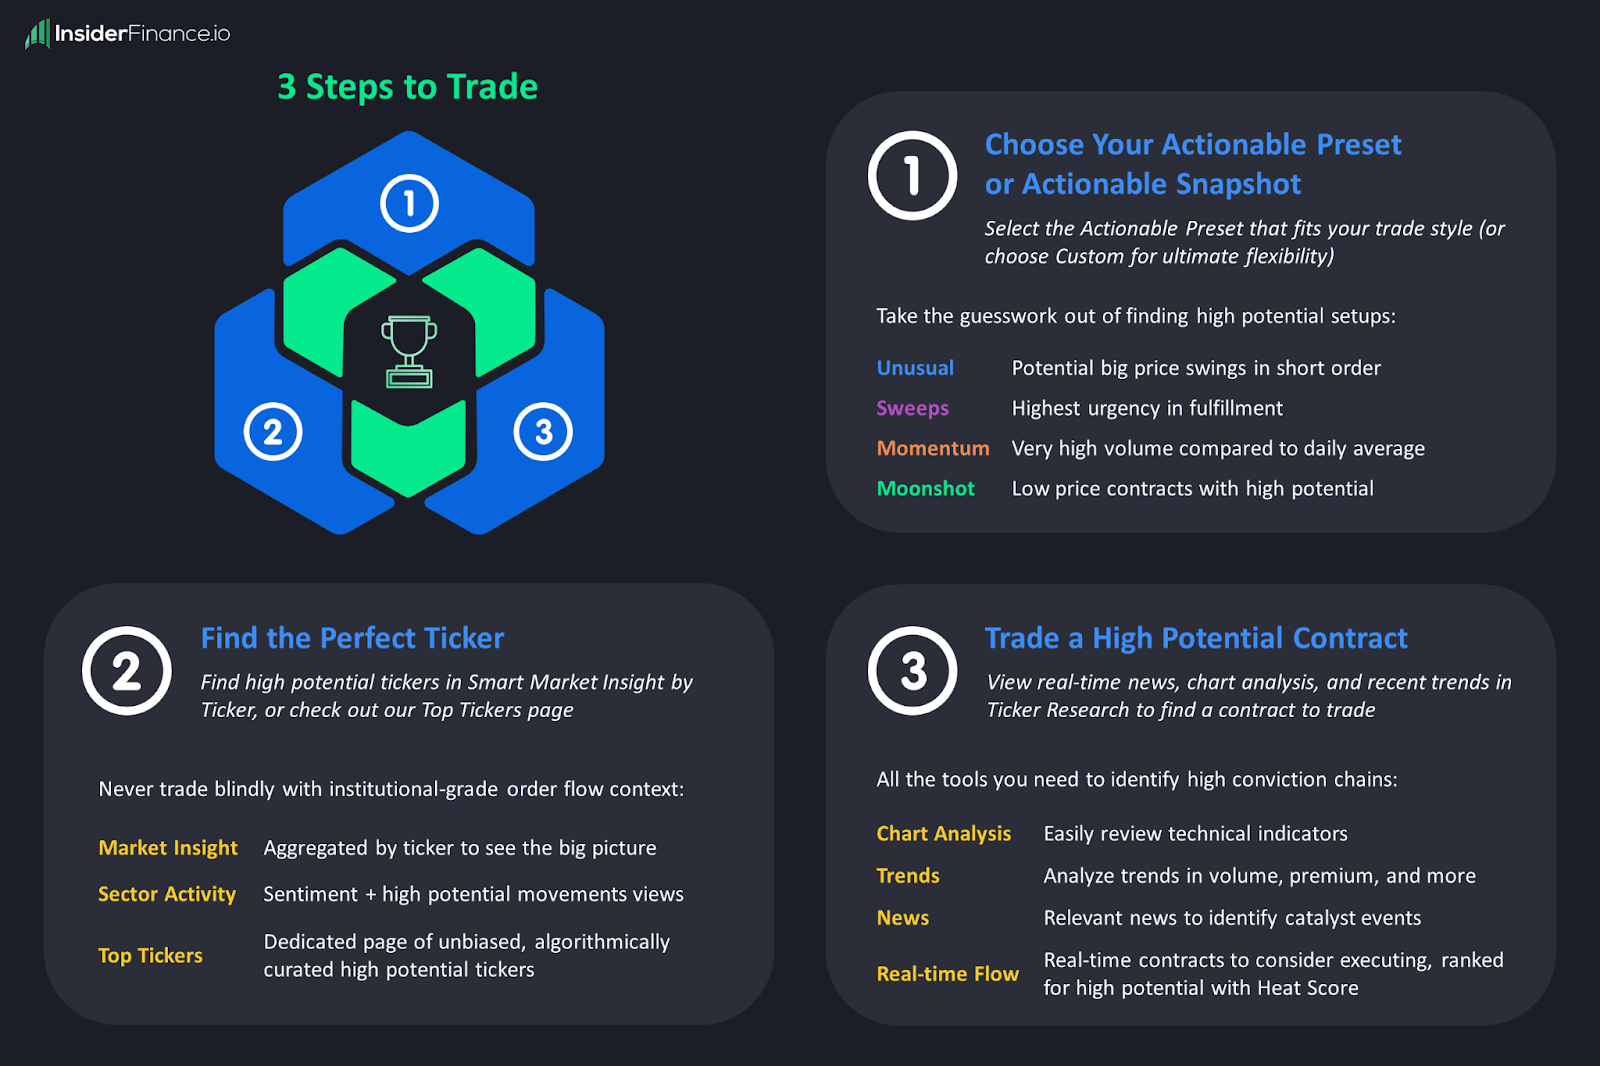 3 Steps to Trade